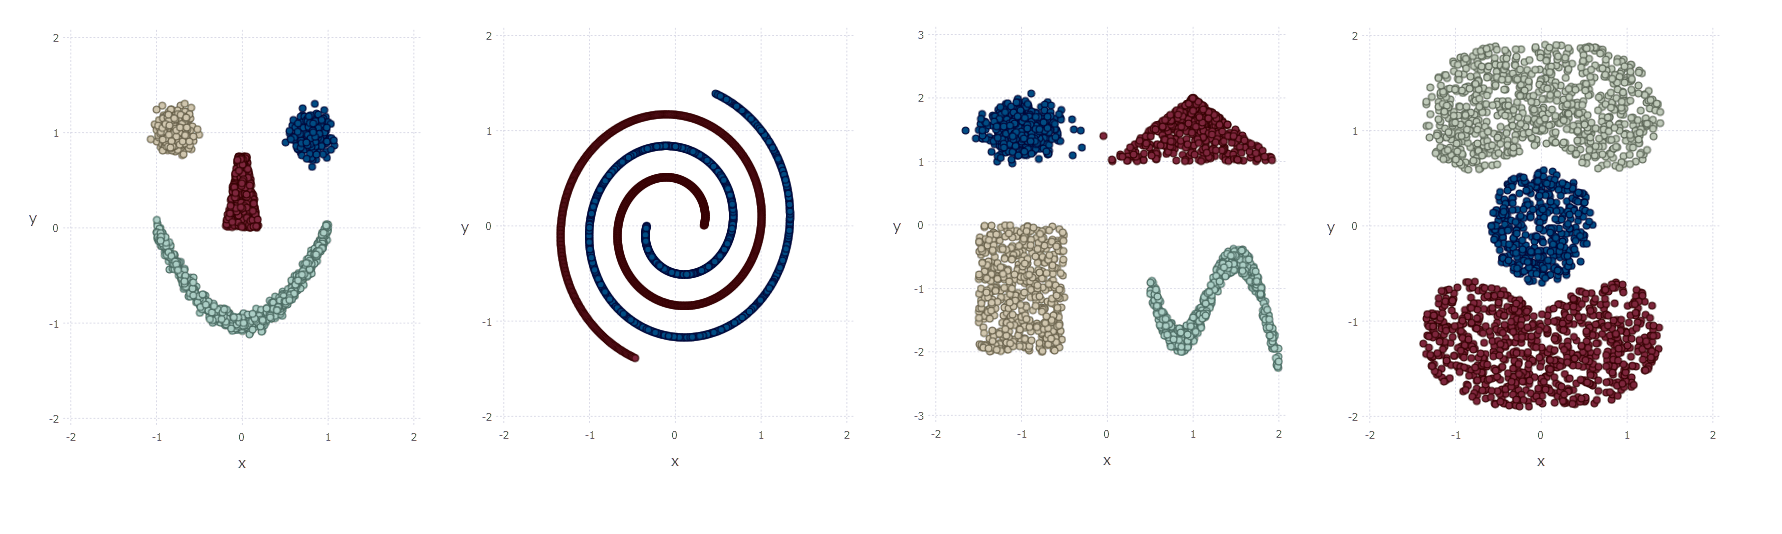 Large Scale Spectral Clustering with Landmark-Based